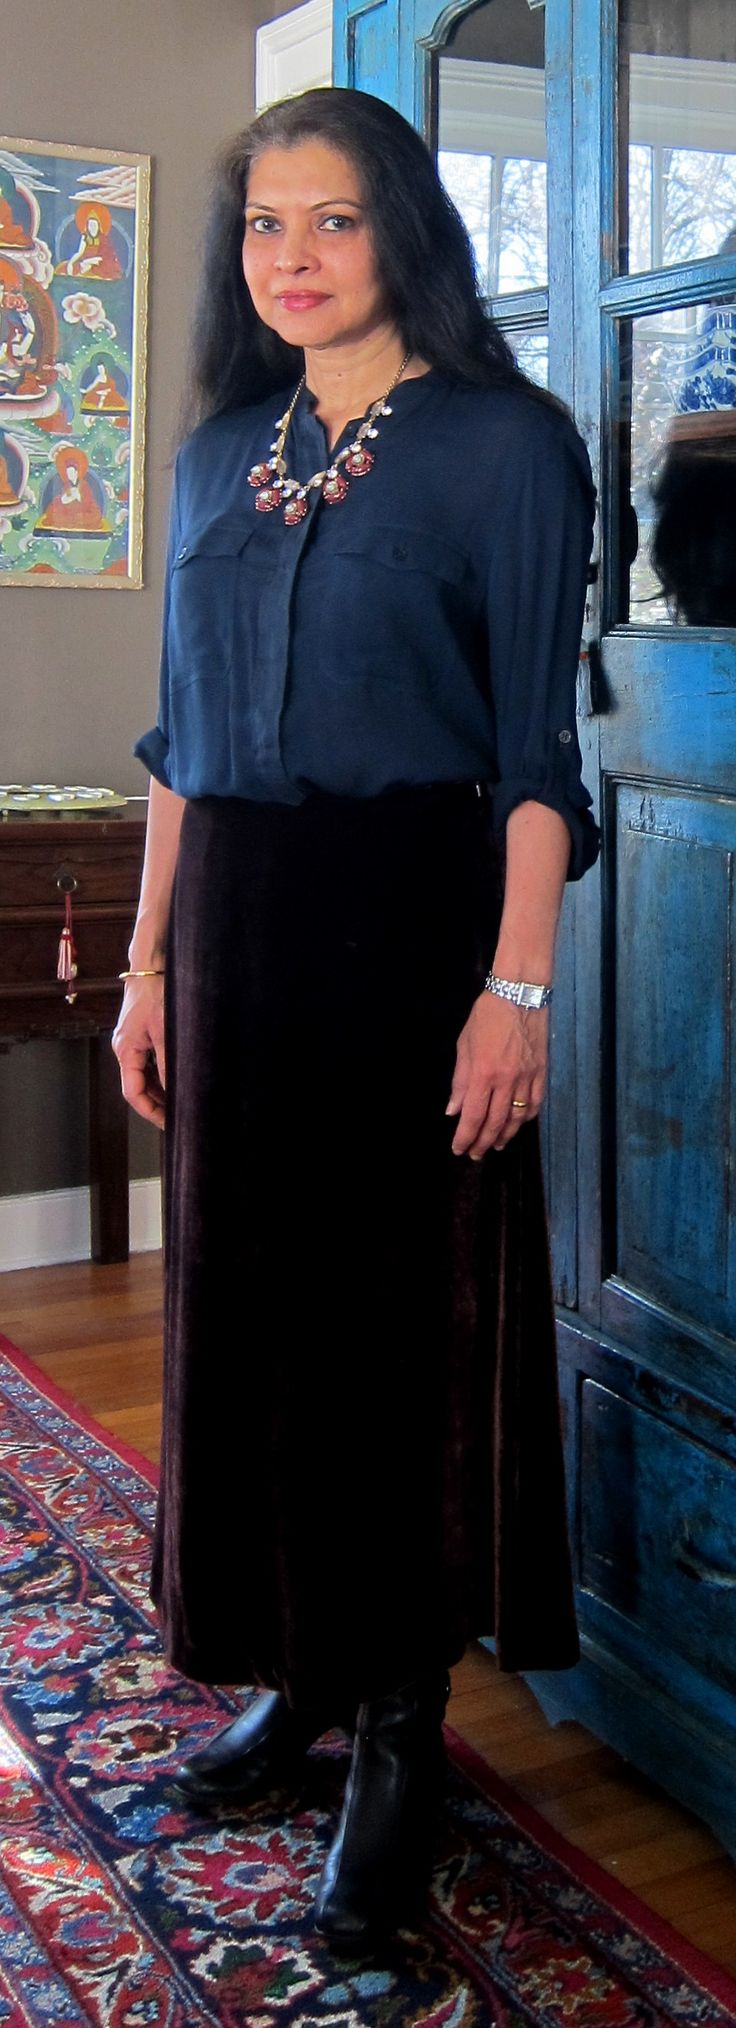 Massimo Dutti linen/rayon top with Jones of New York aubergine velvet skirt, J. Crew necklace and Clarks ankle boots - 2018